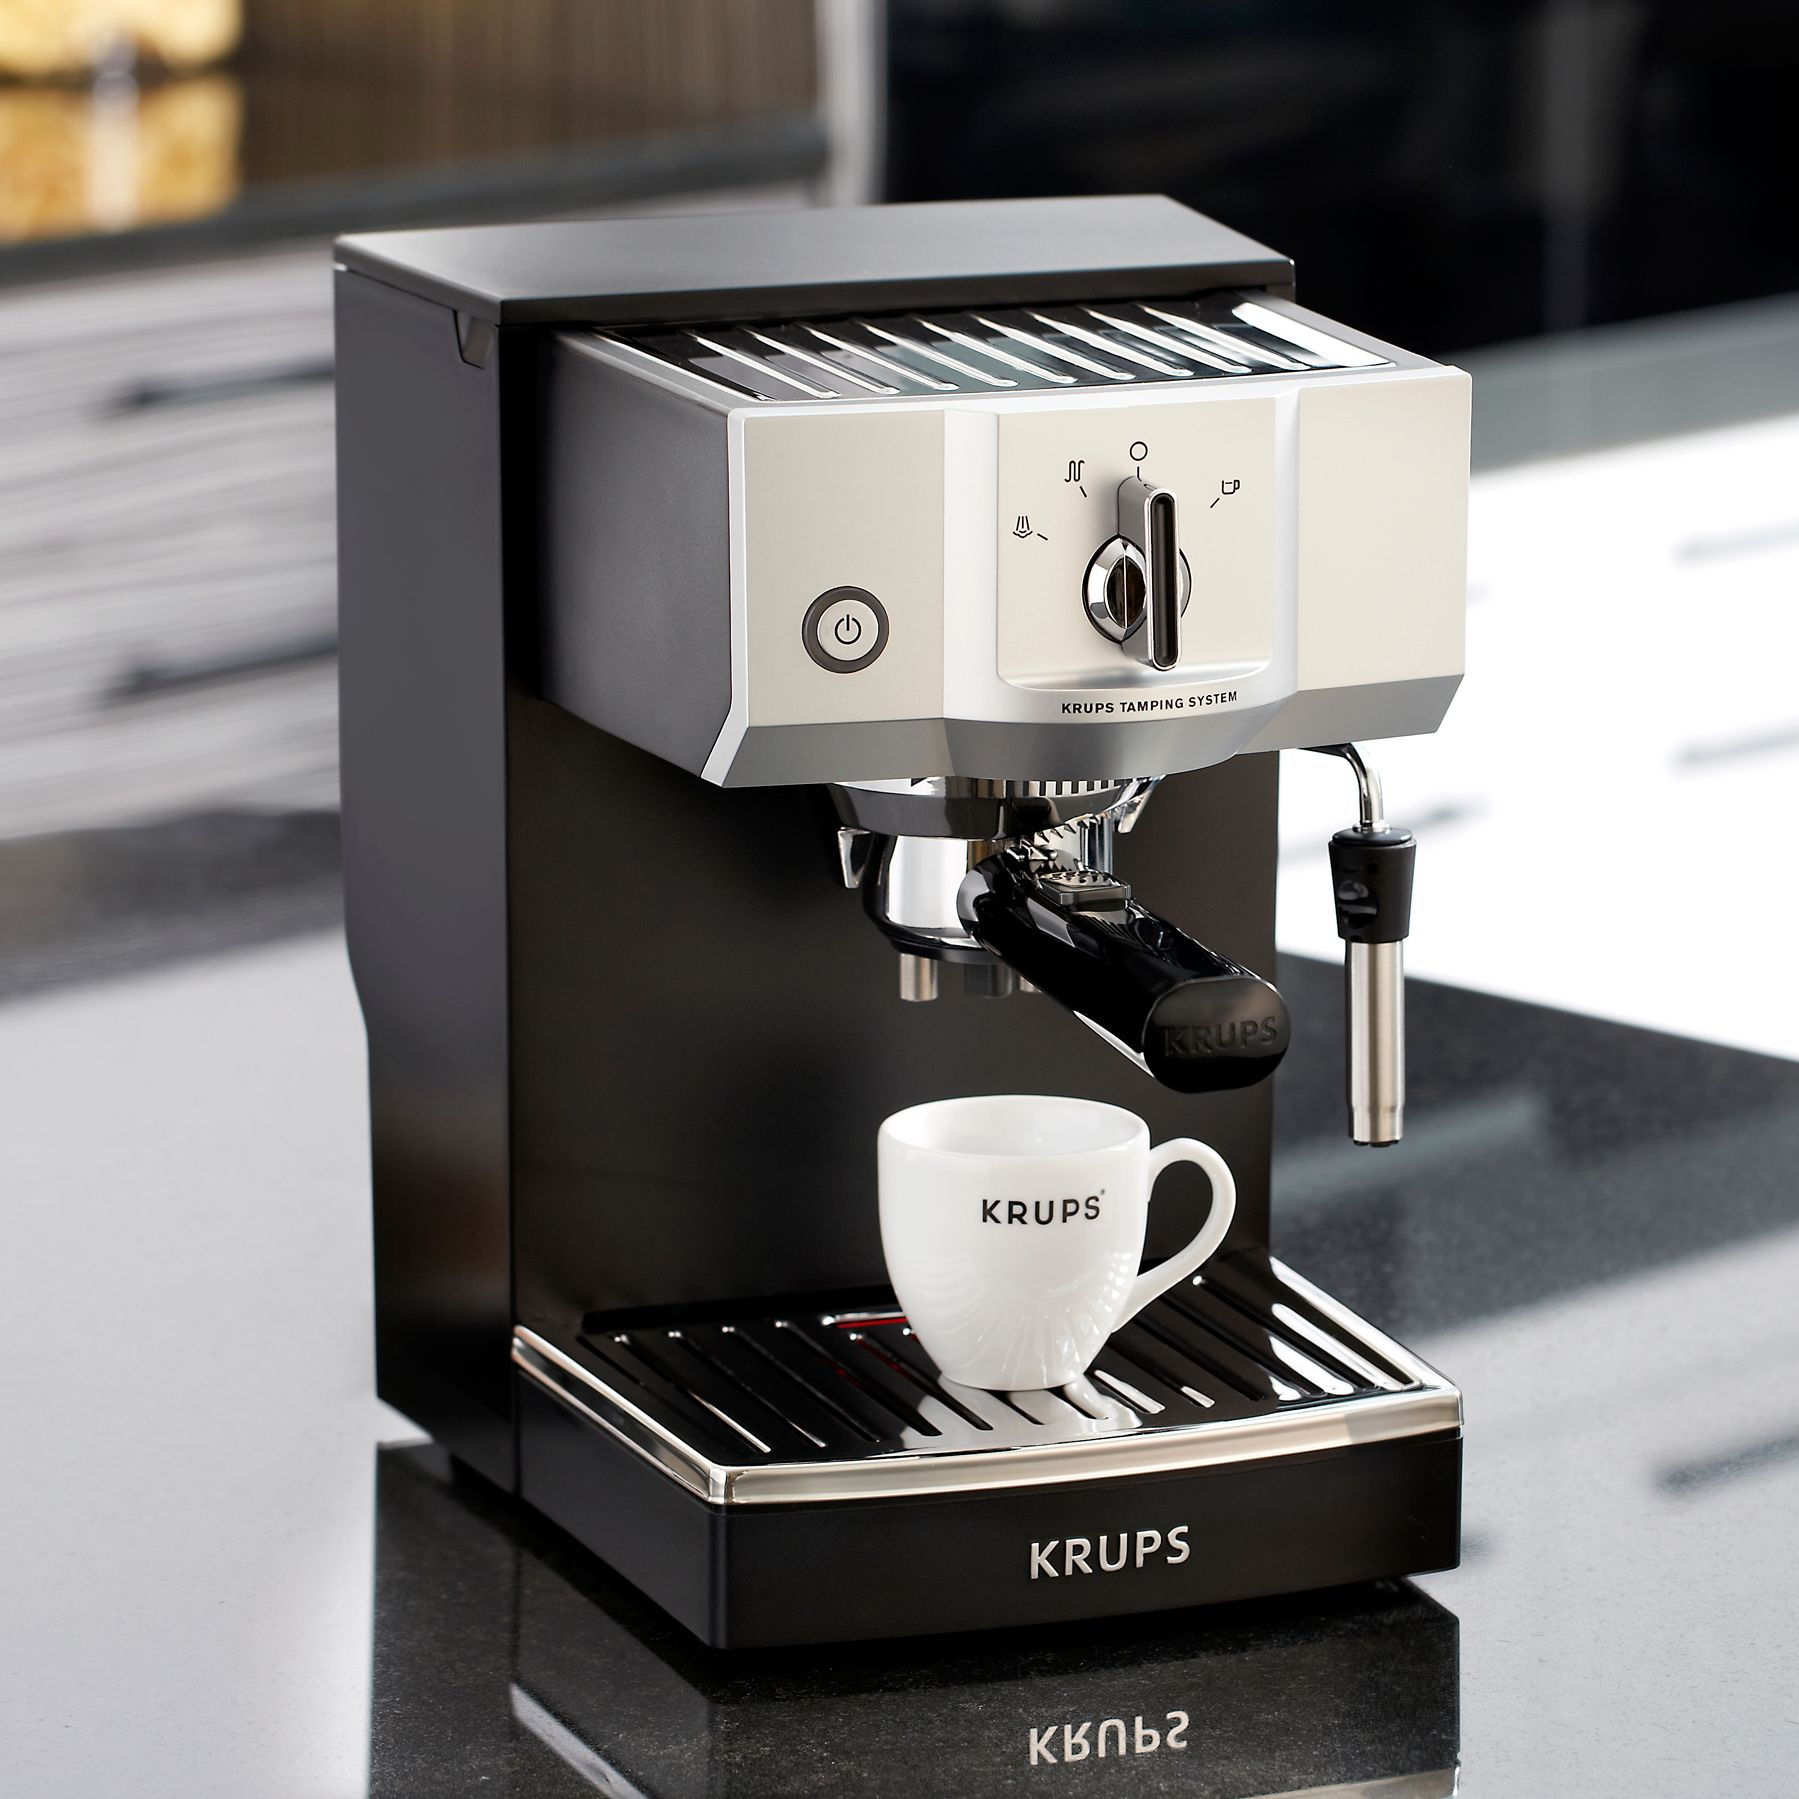 Italian Coffee Maker John Lewis : Buy KRUPS XP5620 Espresso Coffee Machine, Black John Lewis